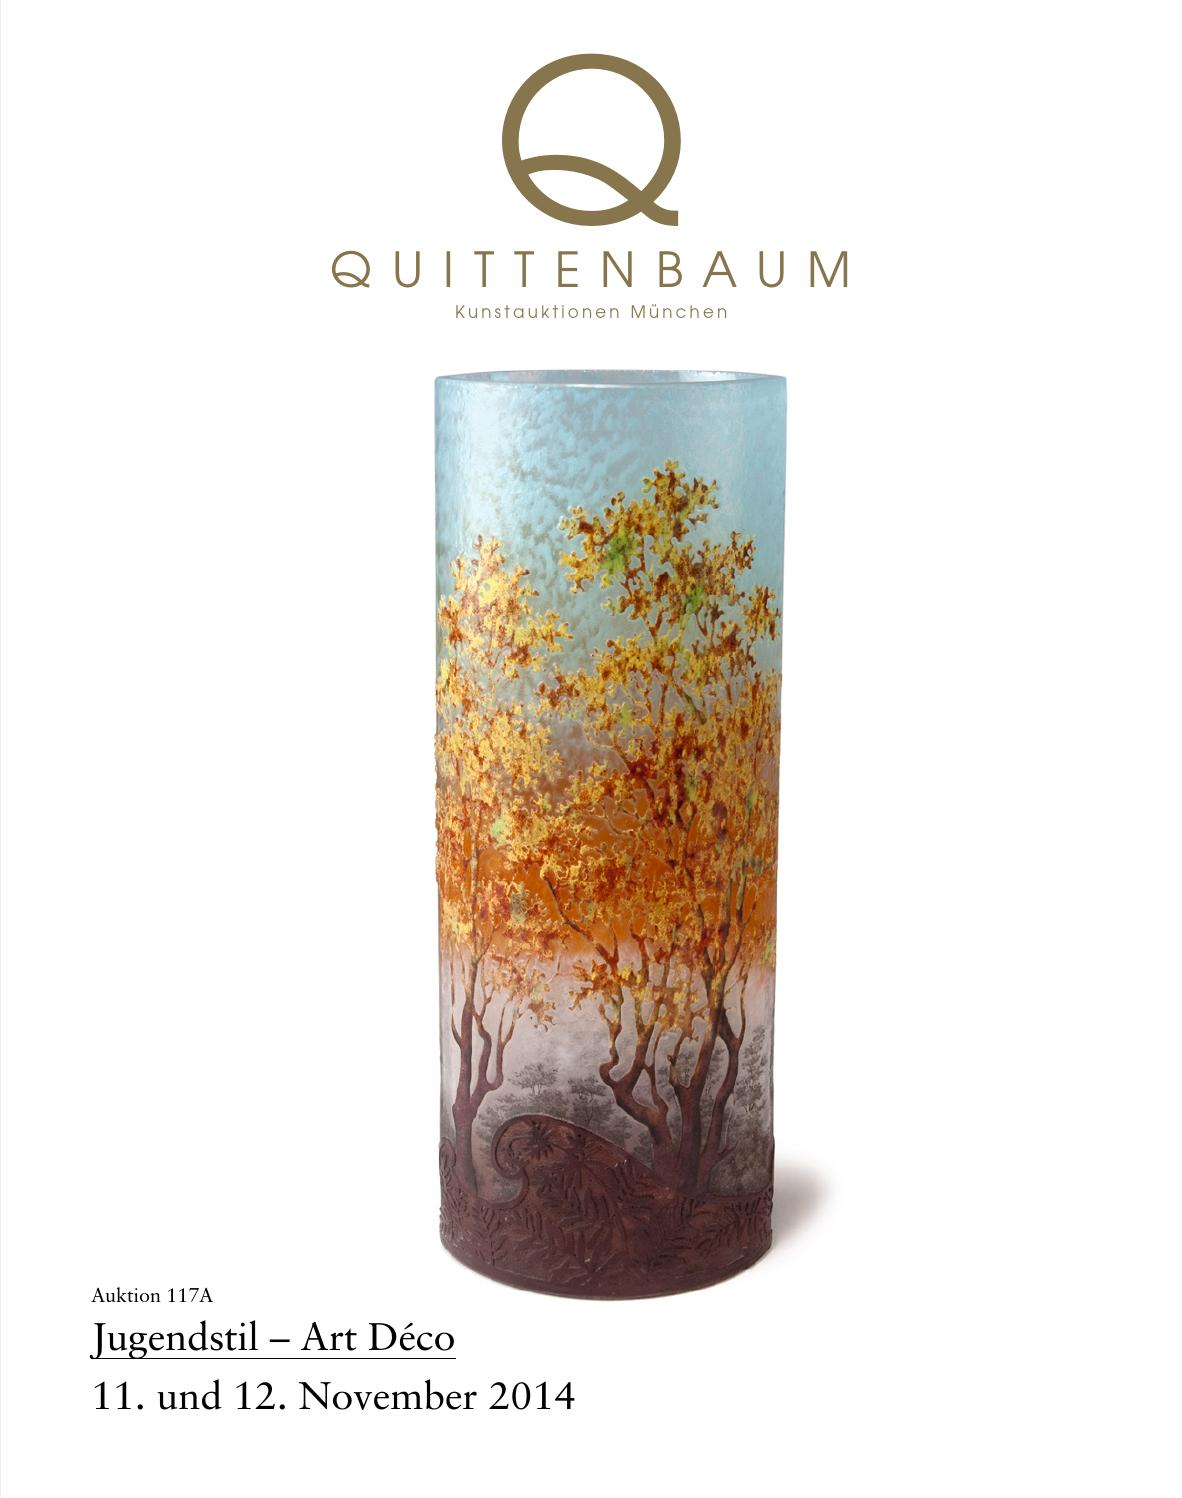 Keksdose Weihnachten Auction 117a Art Nouveau Art Déco Quittenbaum Art Auctions